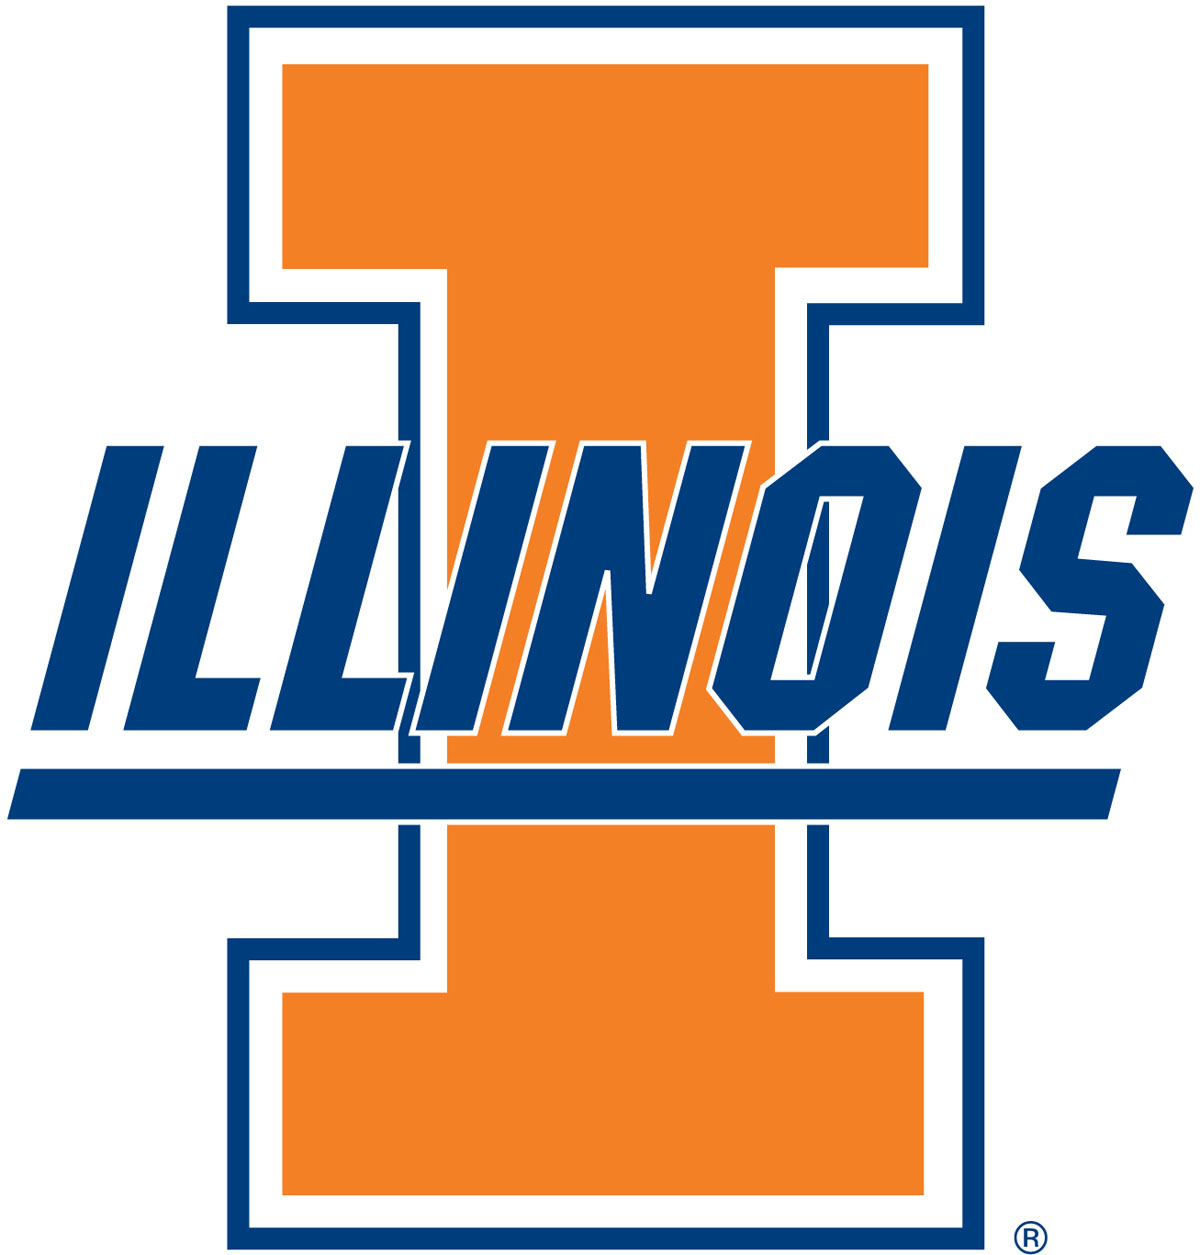 u_of_illinoislogo.jpg